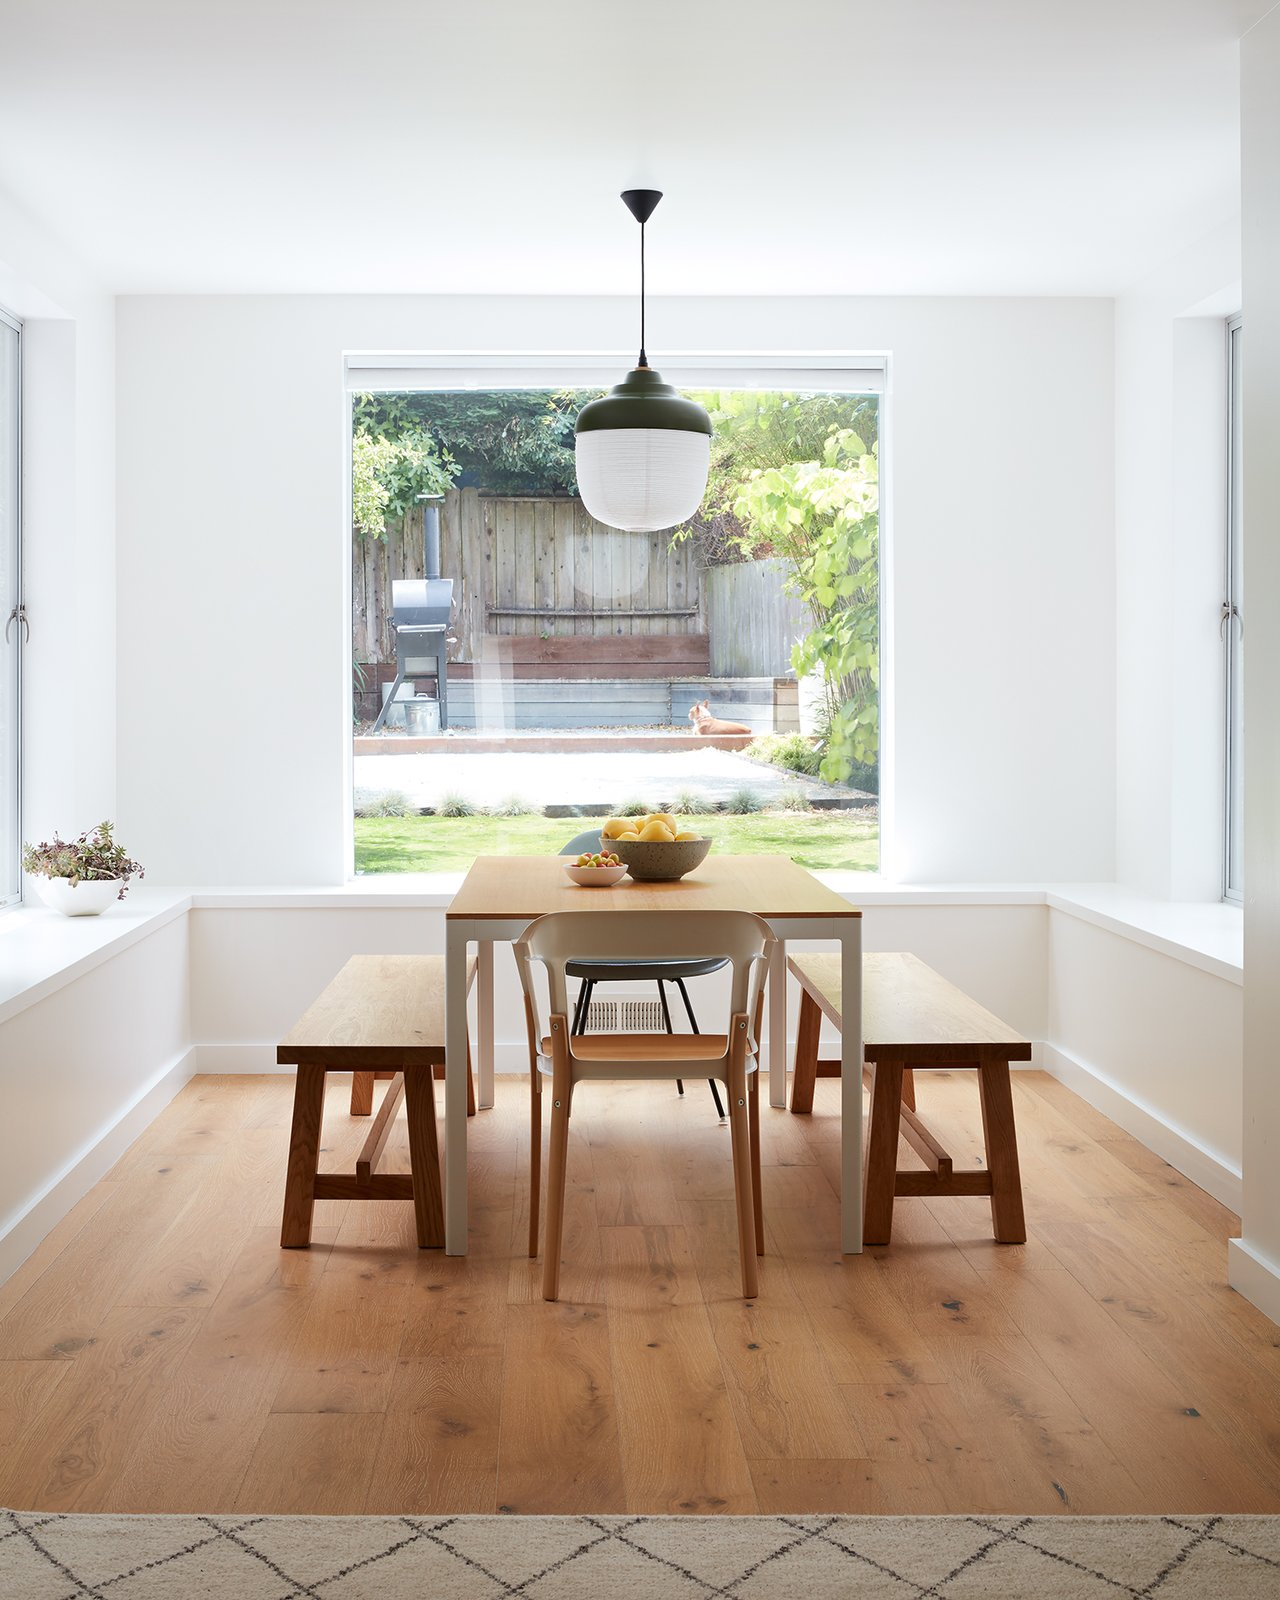 View of Dining Area to Backyard: The New Old Light by Kimu Design hangs in the foreground.